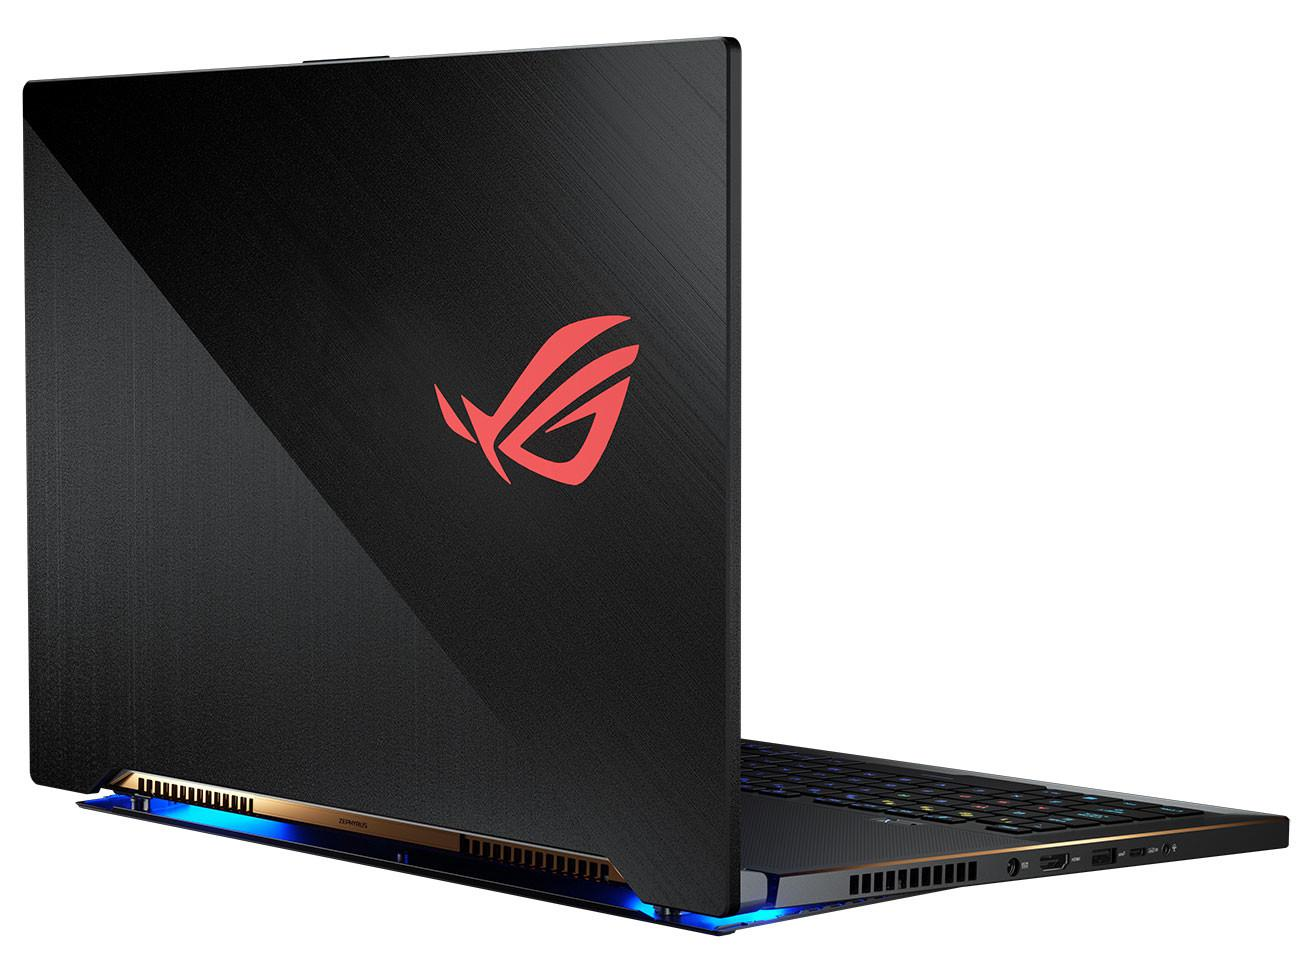 ASUS ROG Zephyrus S GX701 has GeForce RTX and 144Hz Display